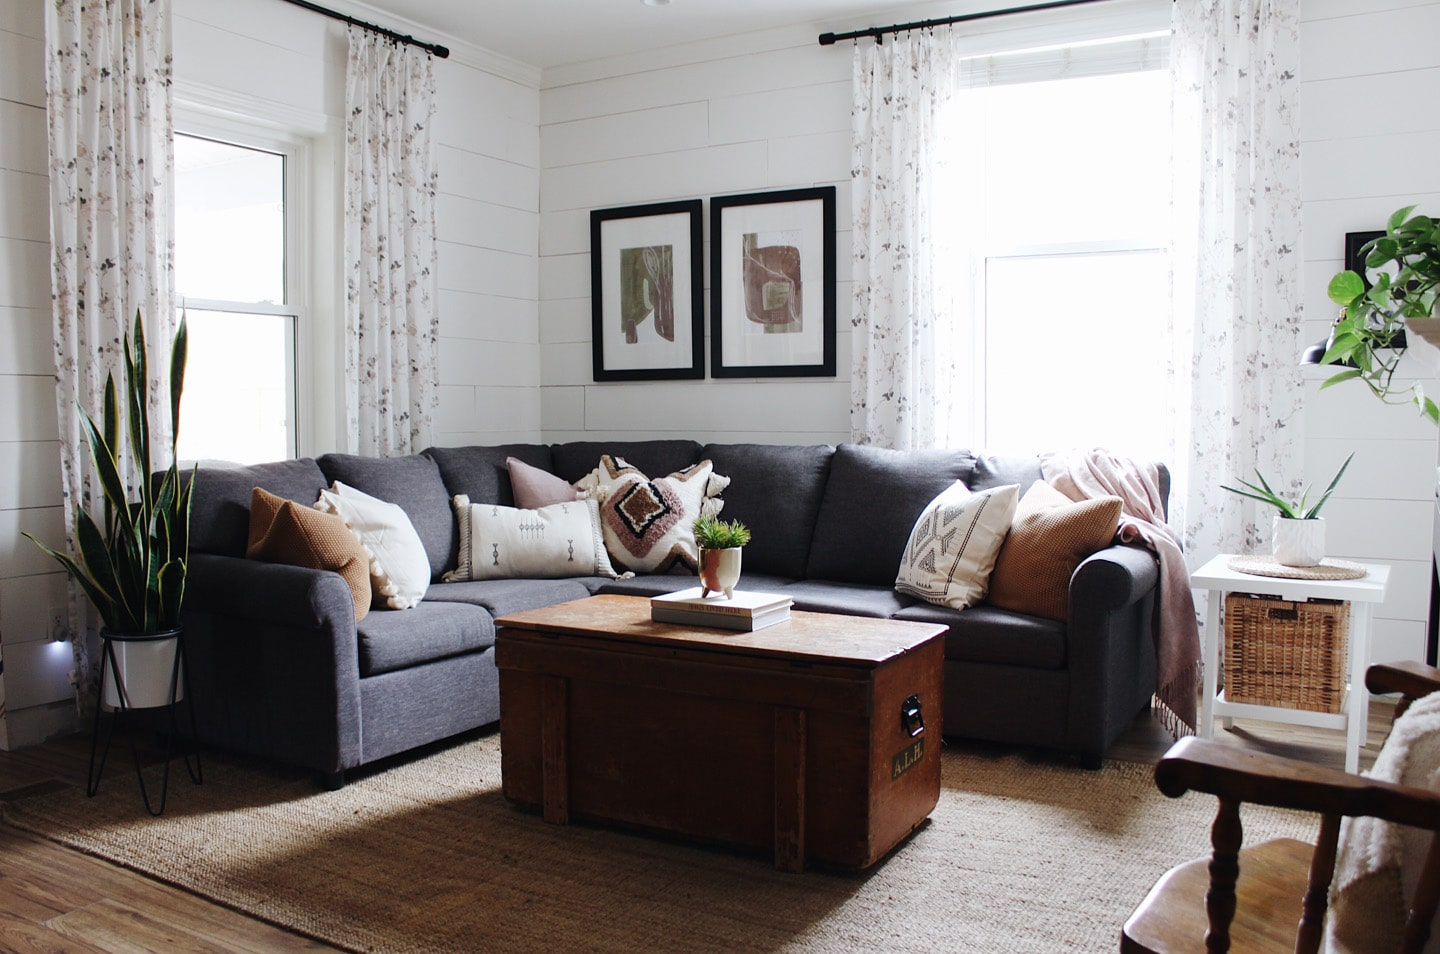 How To Fix An Awkward Living Room Layout - Iekel Road Home